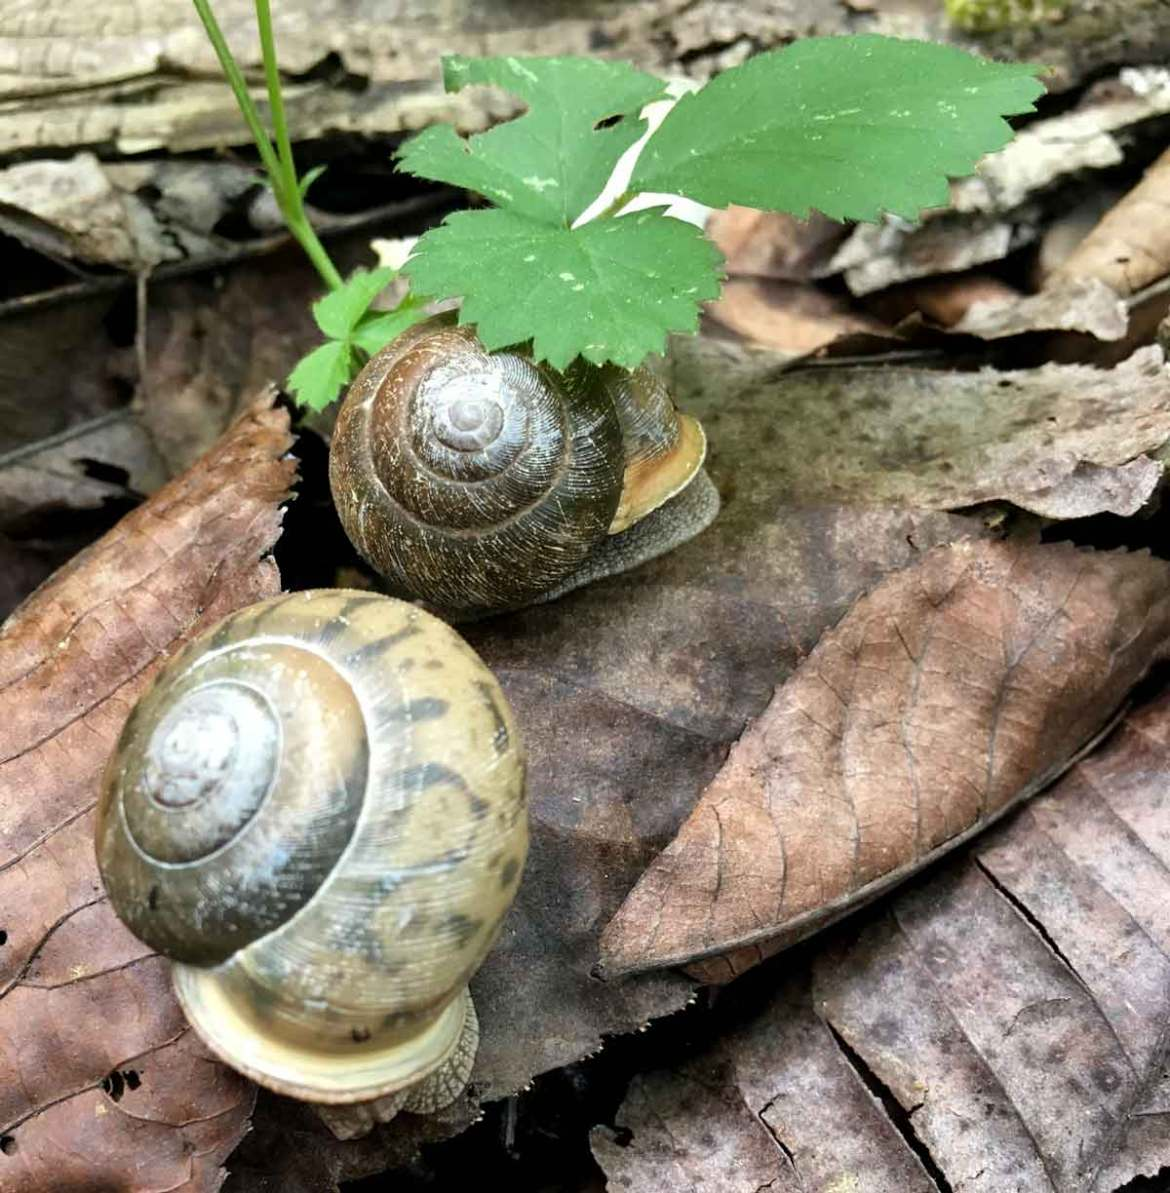 A pair of snails.